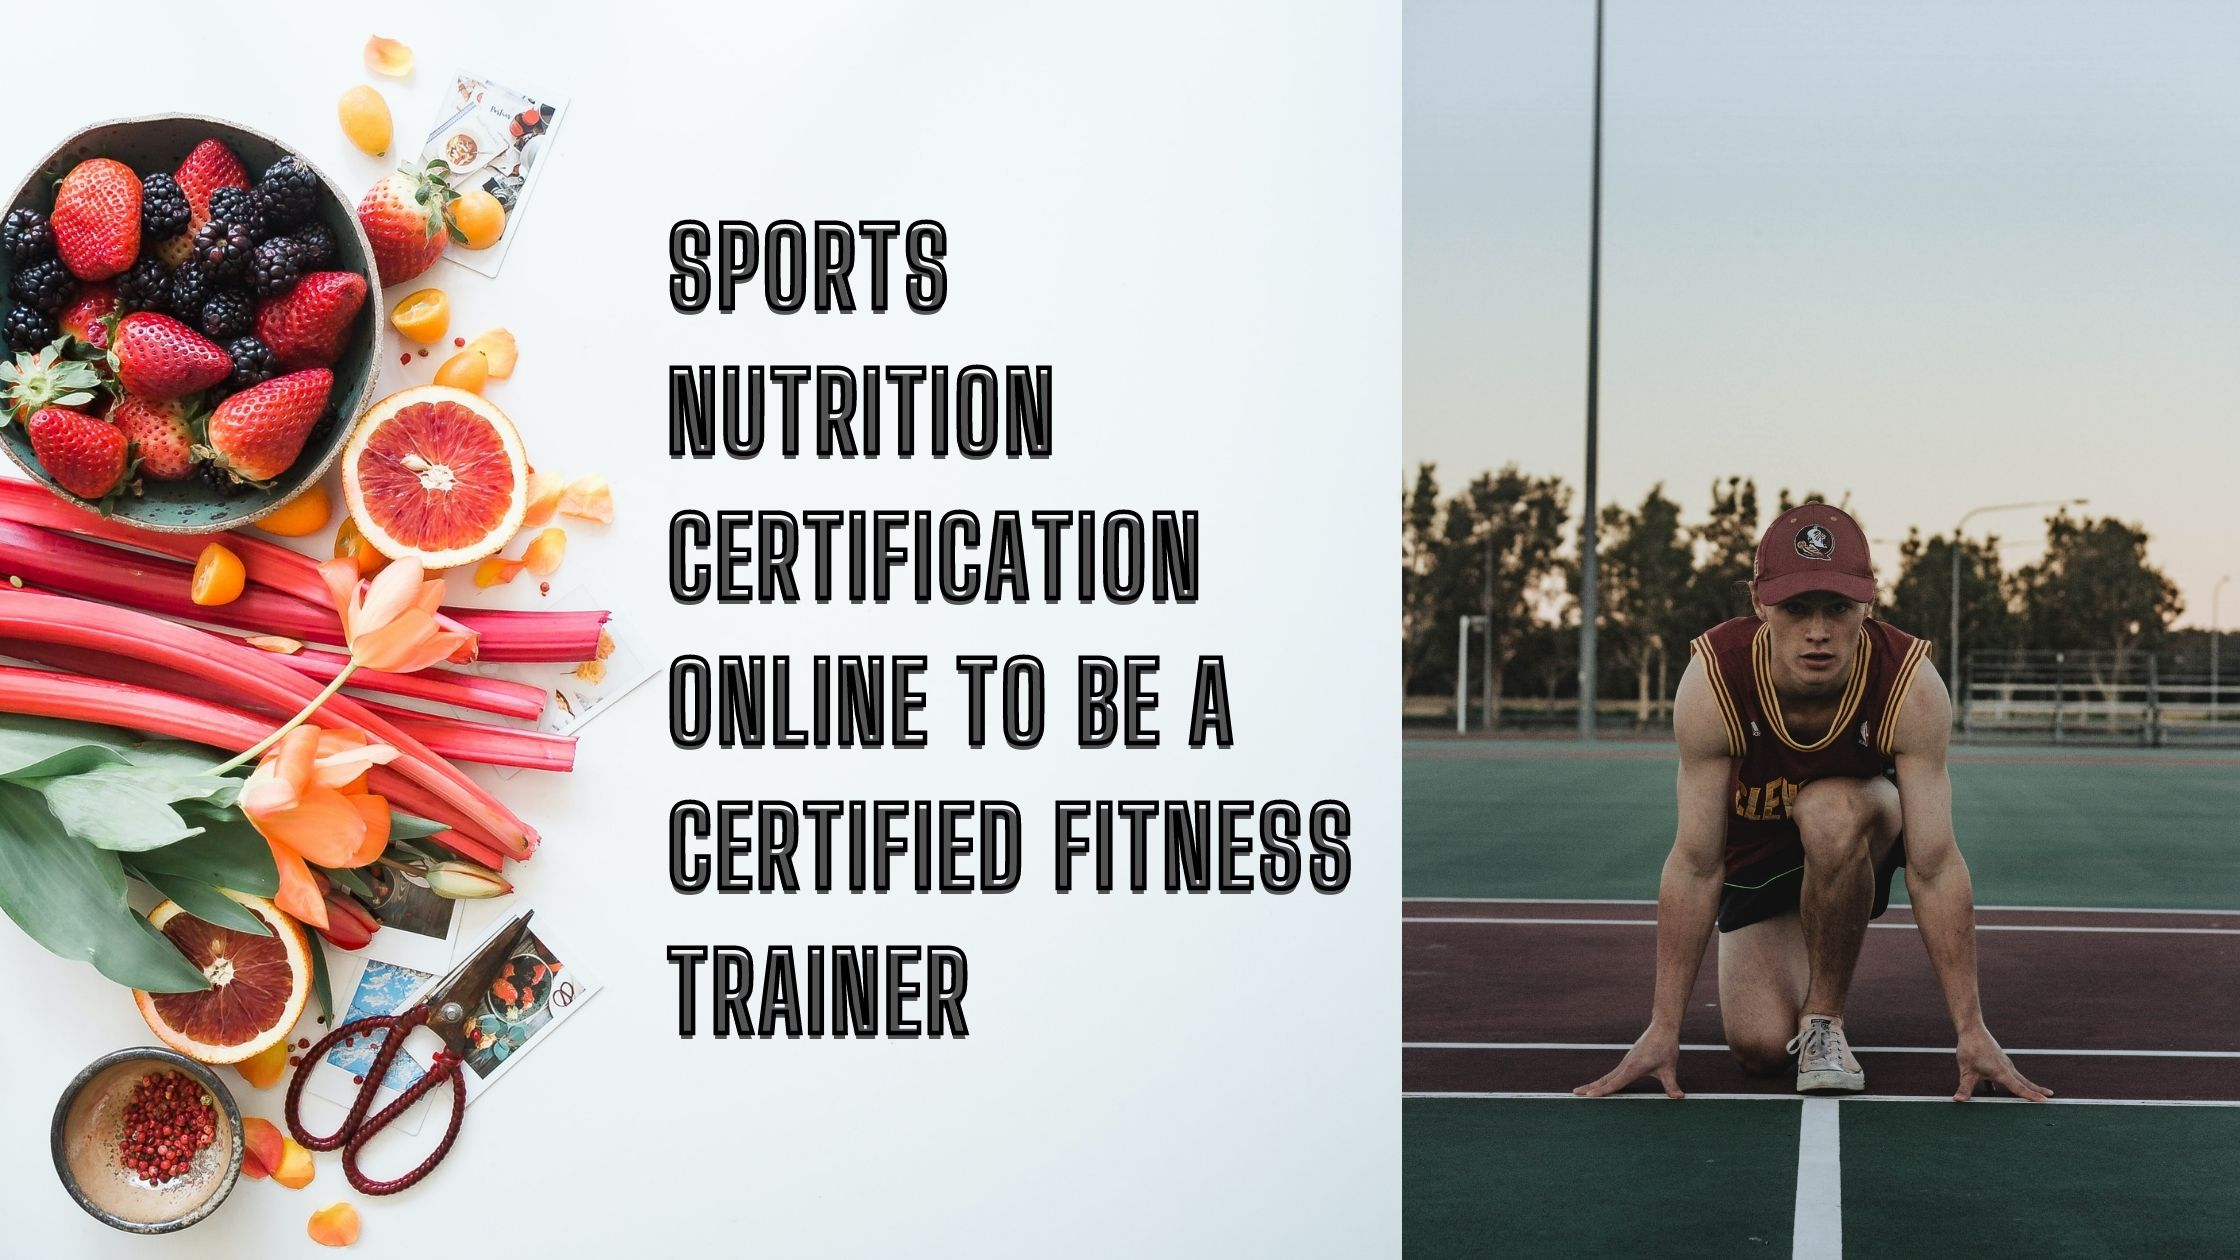 Sports Nutrition Certification Online